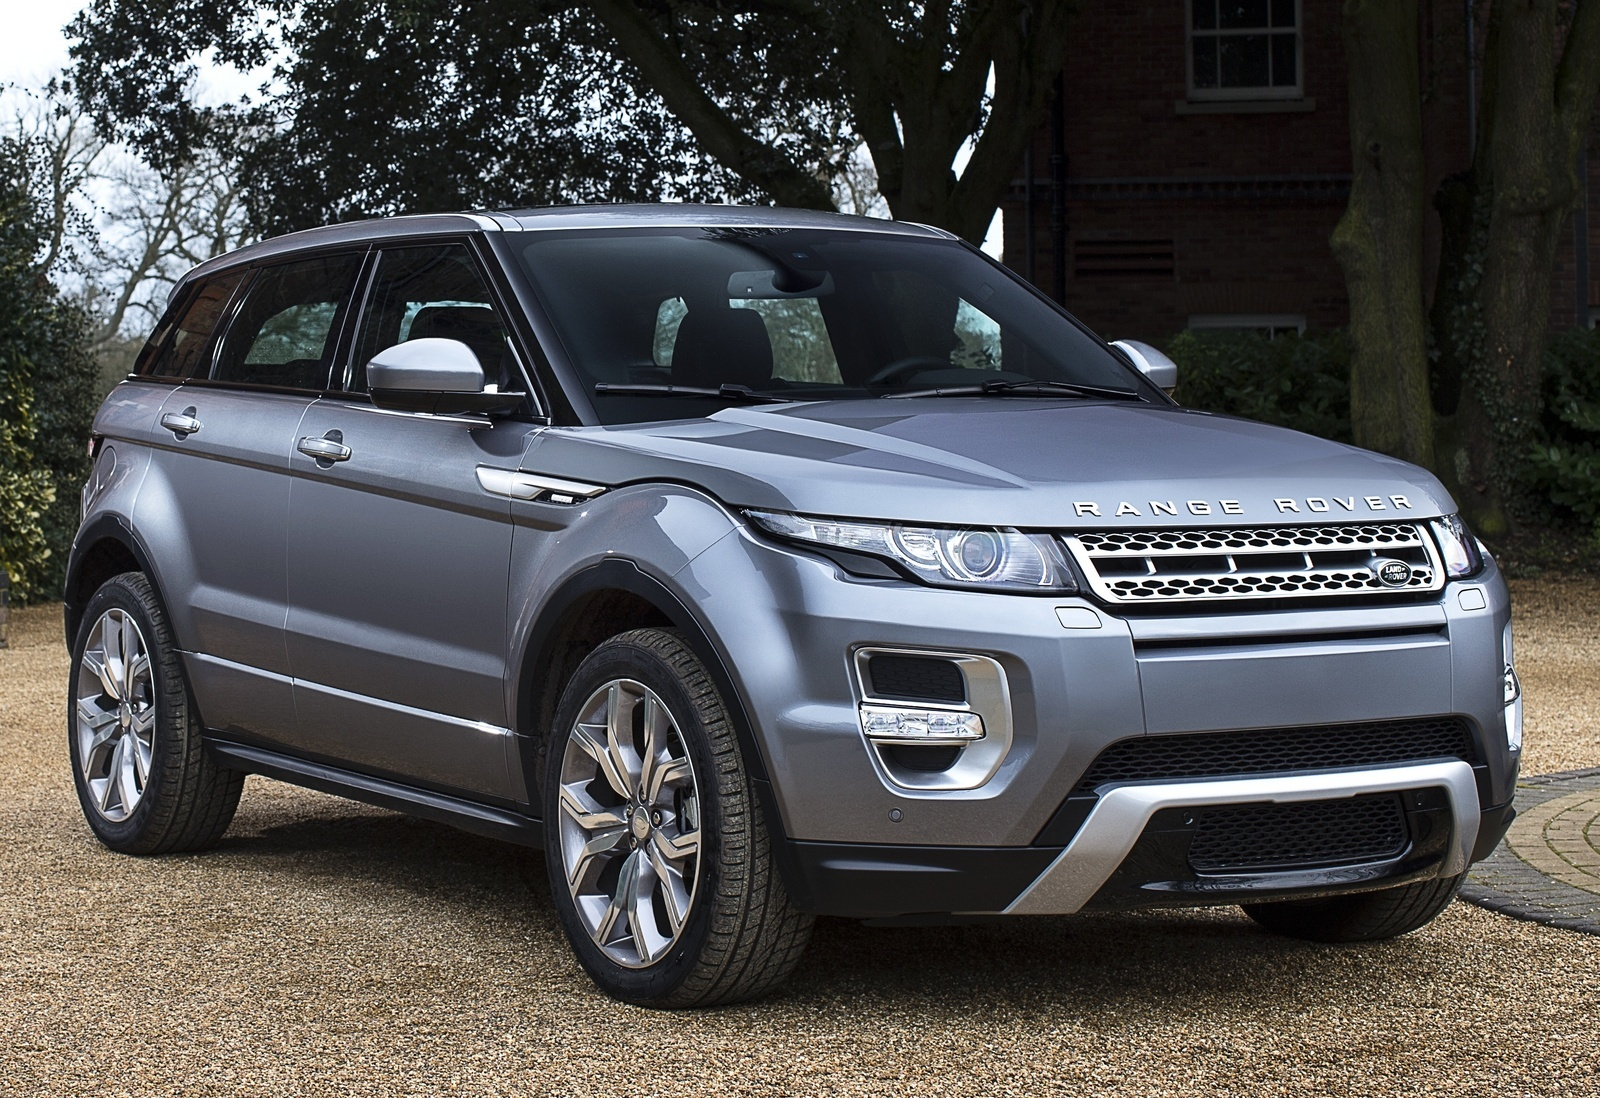 Used Range Rovers For Sale >> 2015 Land Rover Range Rover Evoque Overview Cargurus